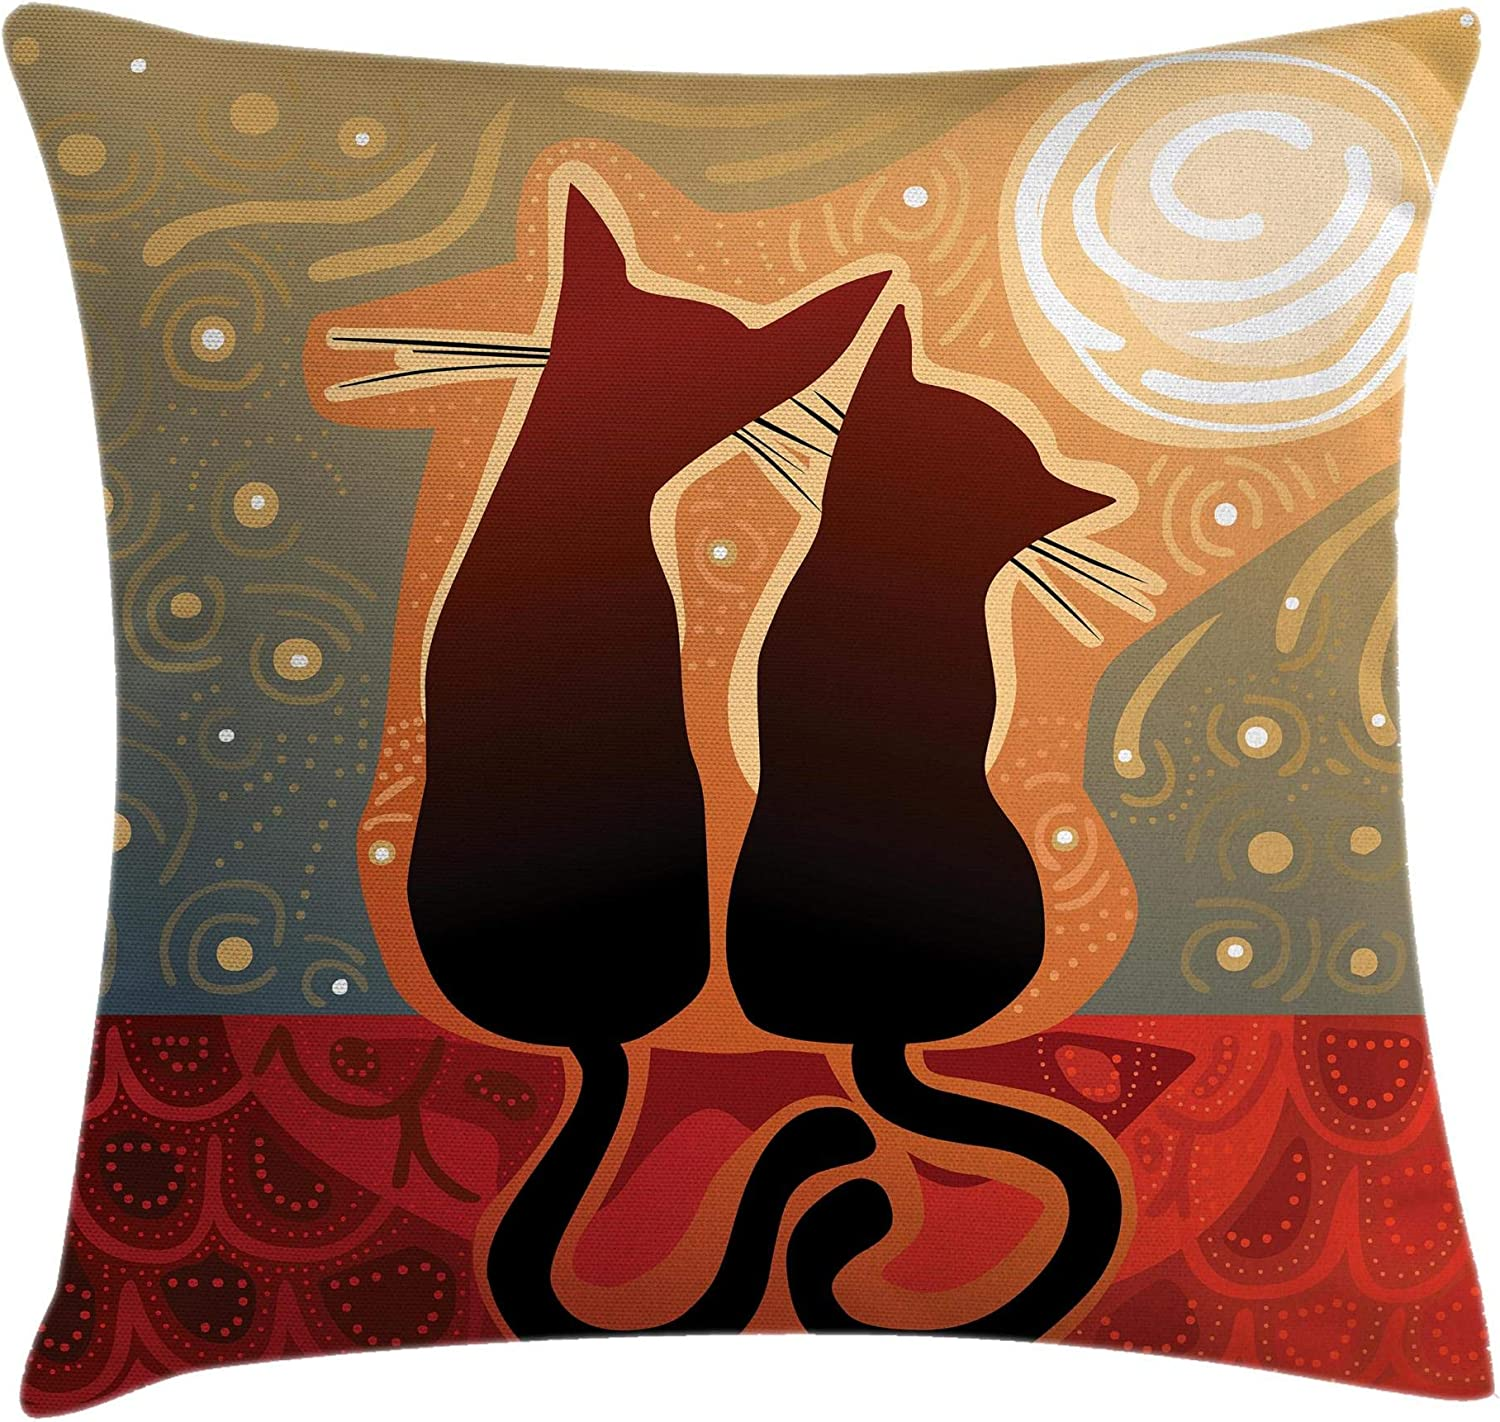 """Ambesonne Animal Throw Pillow Cushion Cover, Female and Male Cats in Love Watching Moon Luna on Starry Sky Print, Decorative Square Accent Pillow Case, 18"""" X 18"""", Green Orange"""